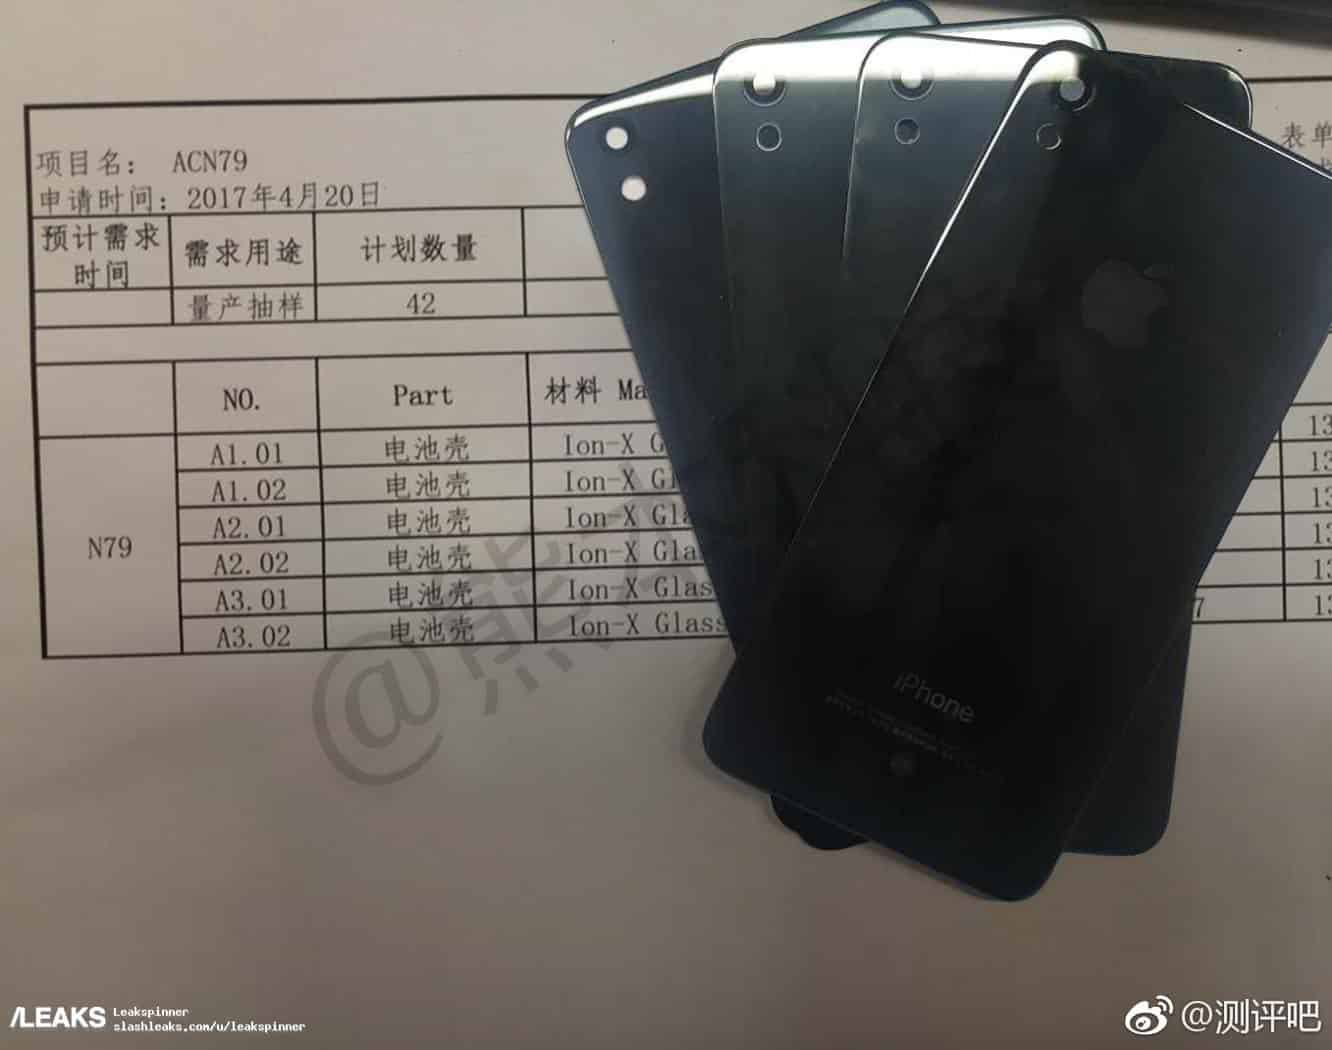 Leaked photo allegedly shows new glass-backed iPhone SE model